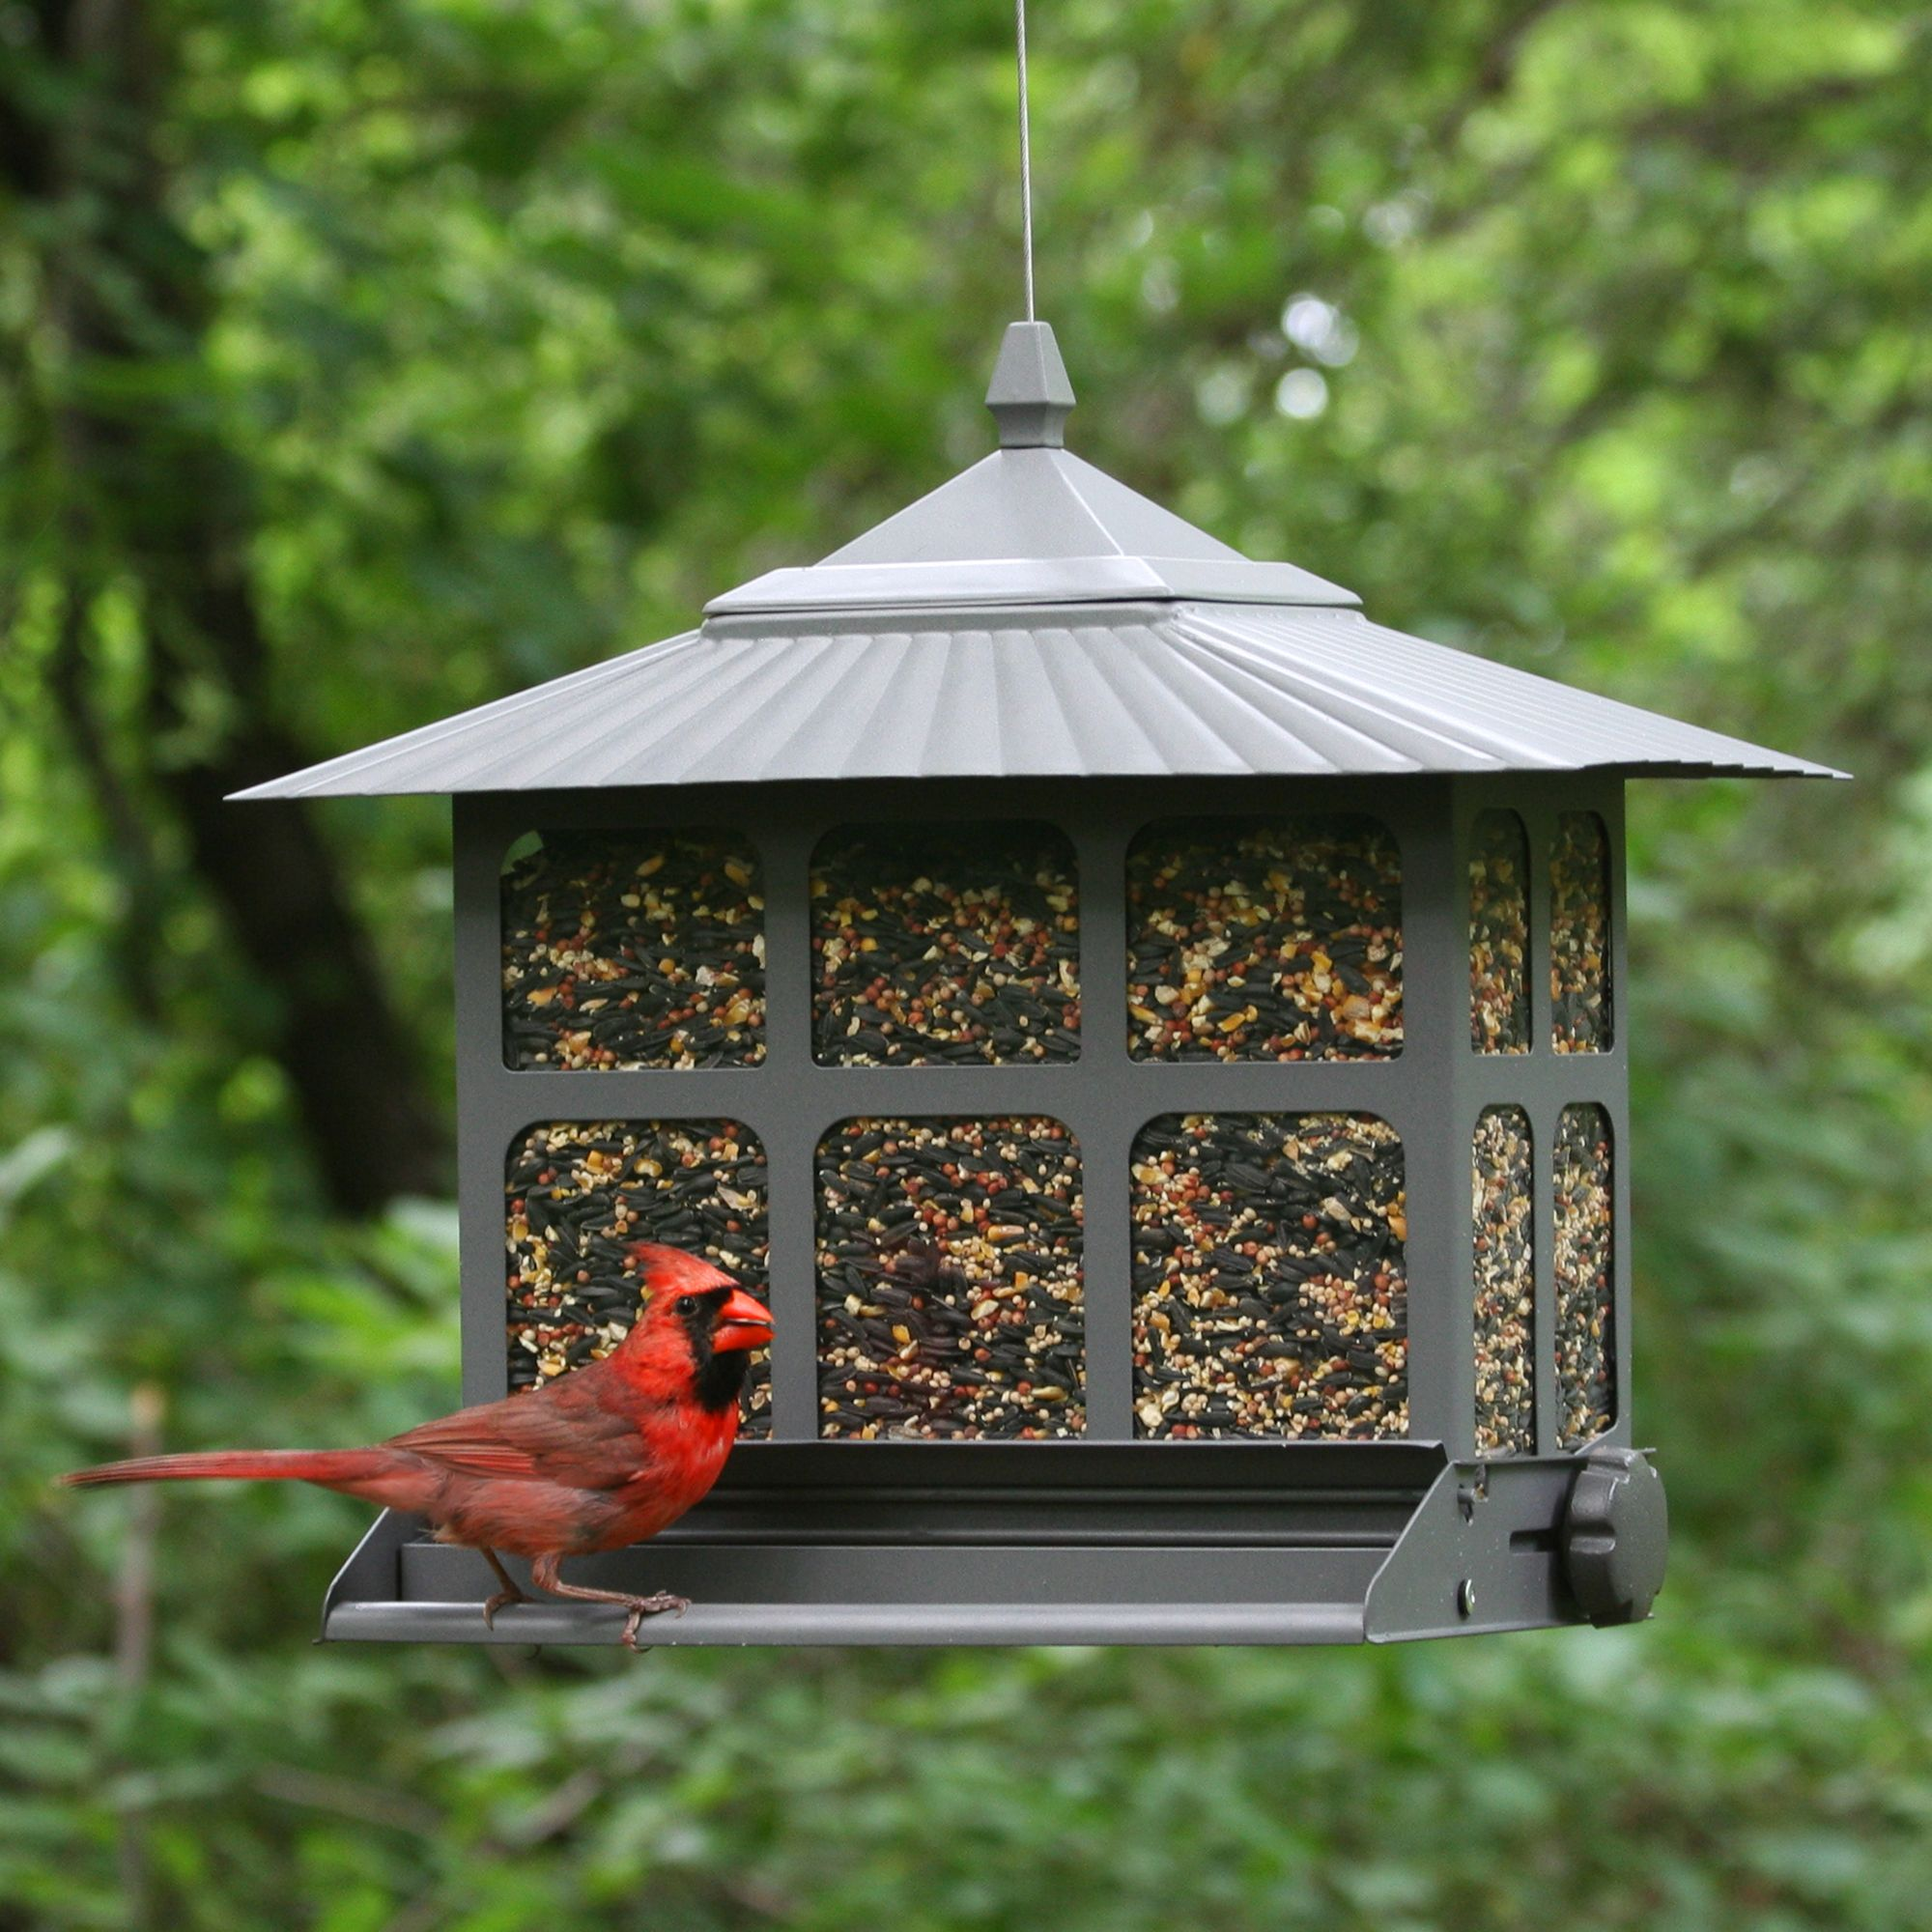 yankee of flipper tube photo design att yankees proof squirrel home feeder ideas droll x bird